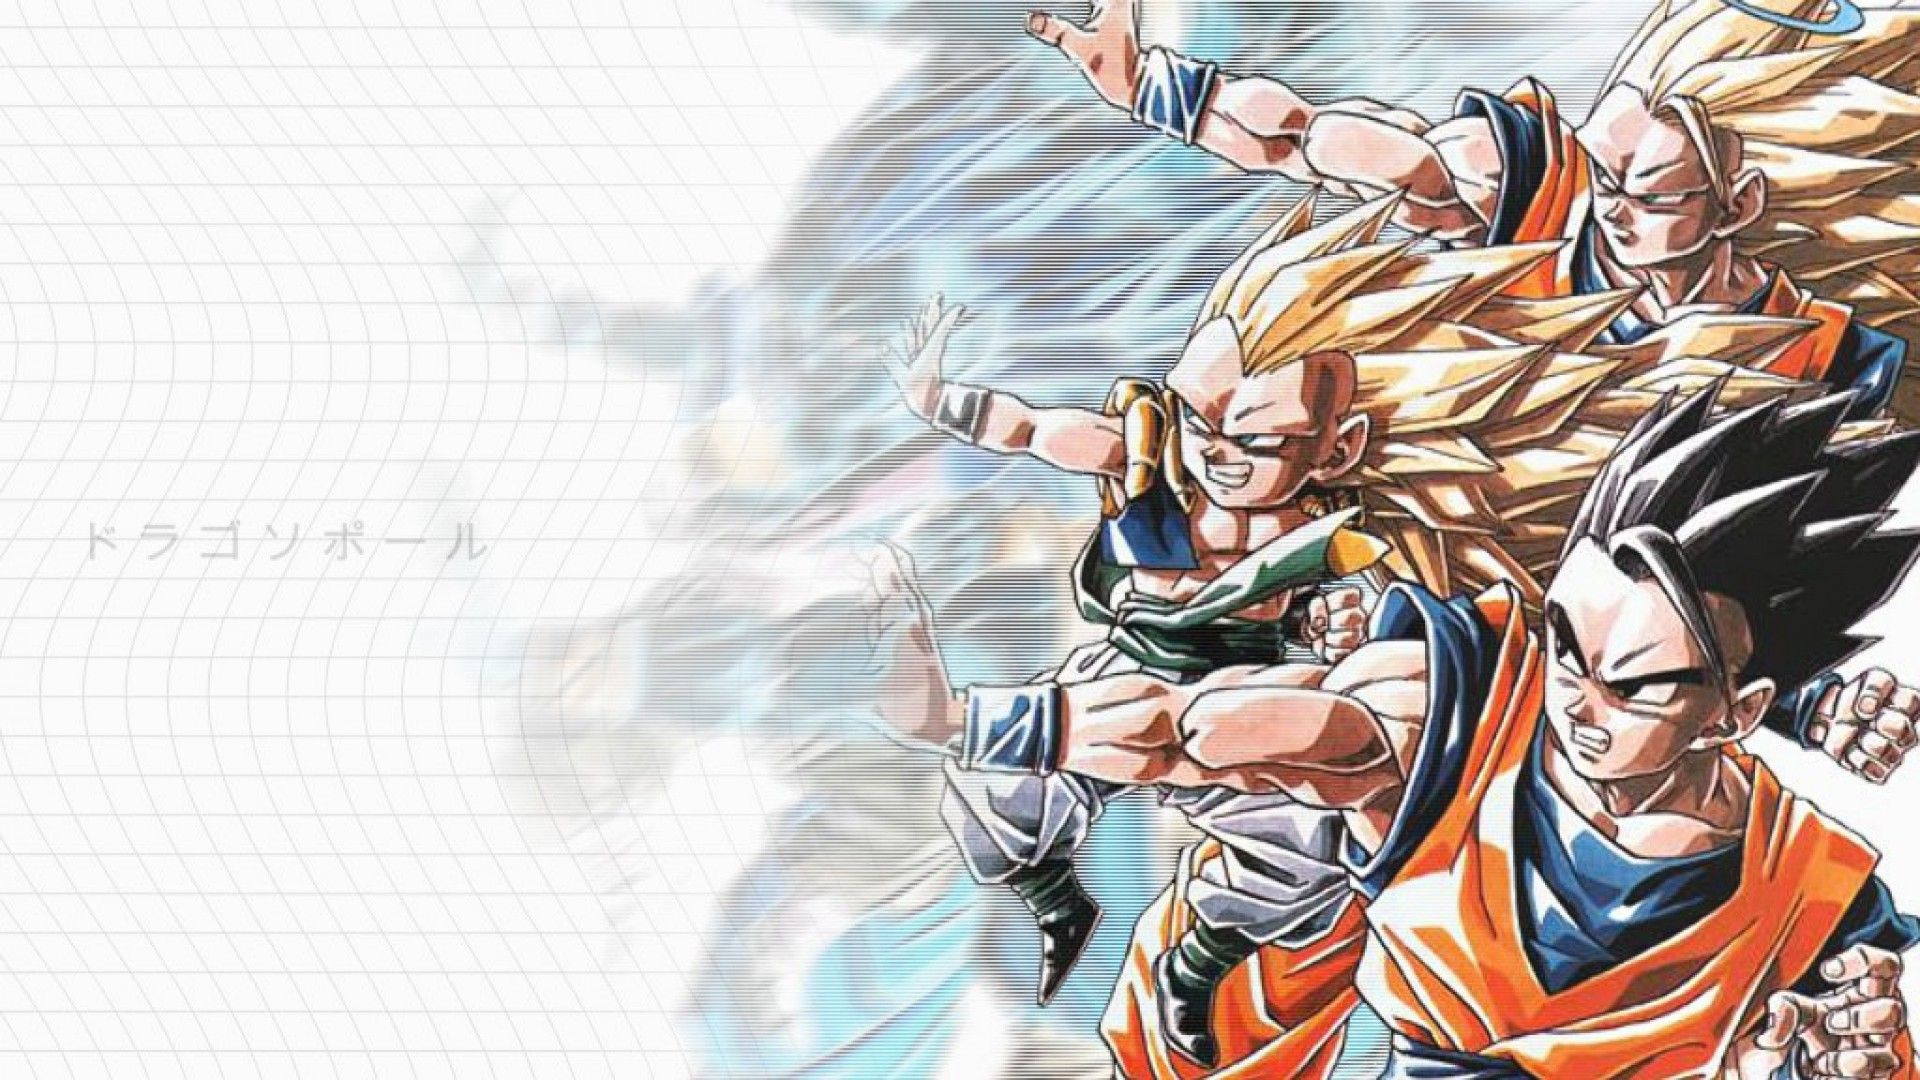 Dbz Wallpaper Goku Dragon Ball Z 1080p Wa...